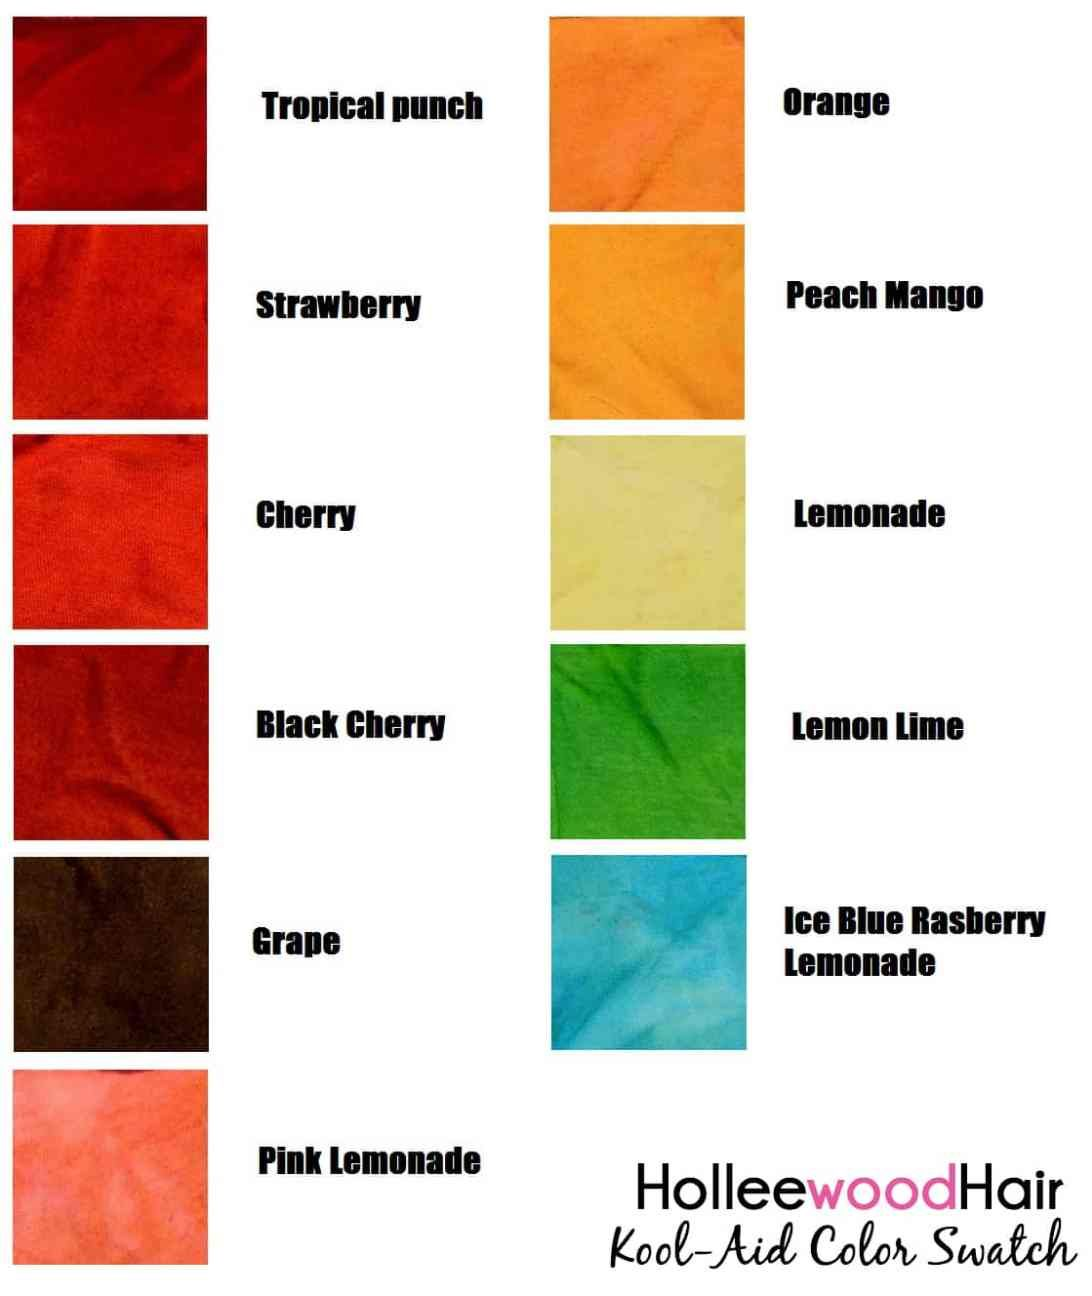 Kool Aid Hair Color 2021 Guide How To Dye Your Hair With Kool Aid Kool Aid Hair Kool Aid Hair Dye Hair Dye Color Chart Kool aid hair dye color chart